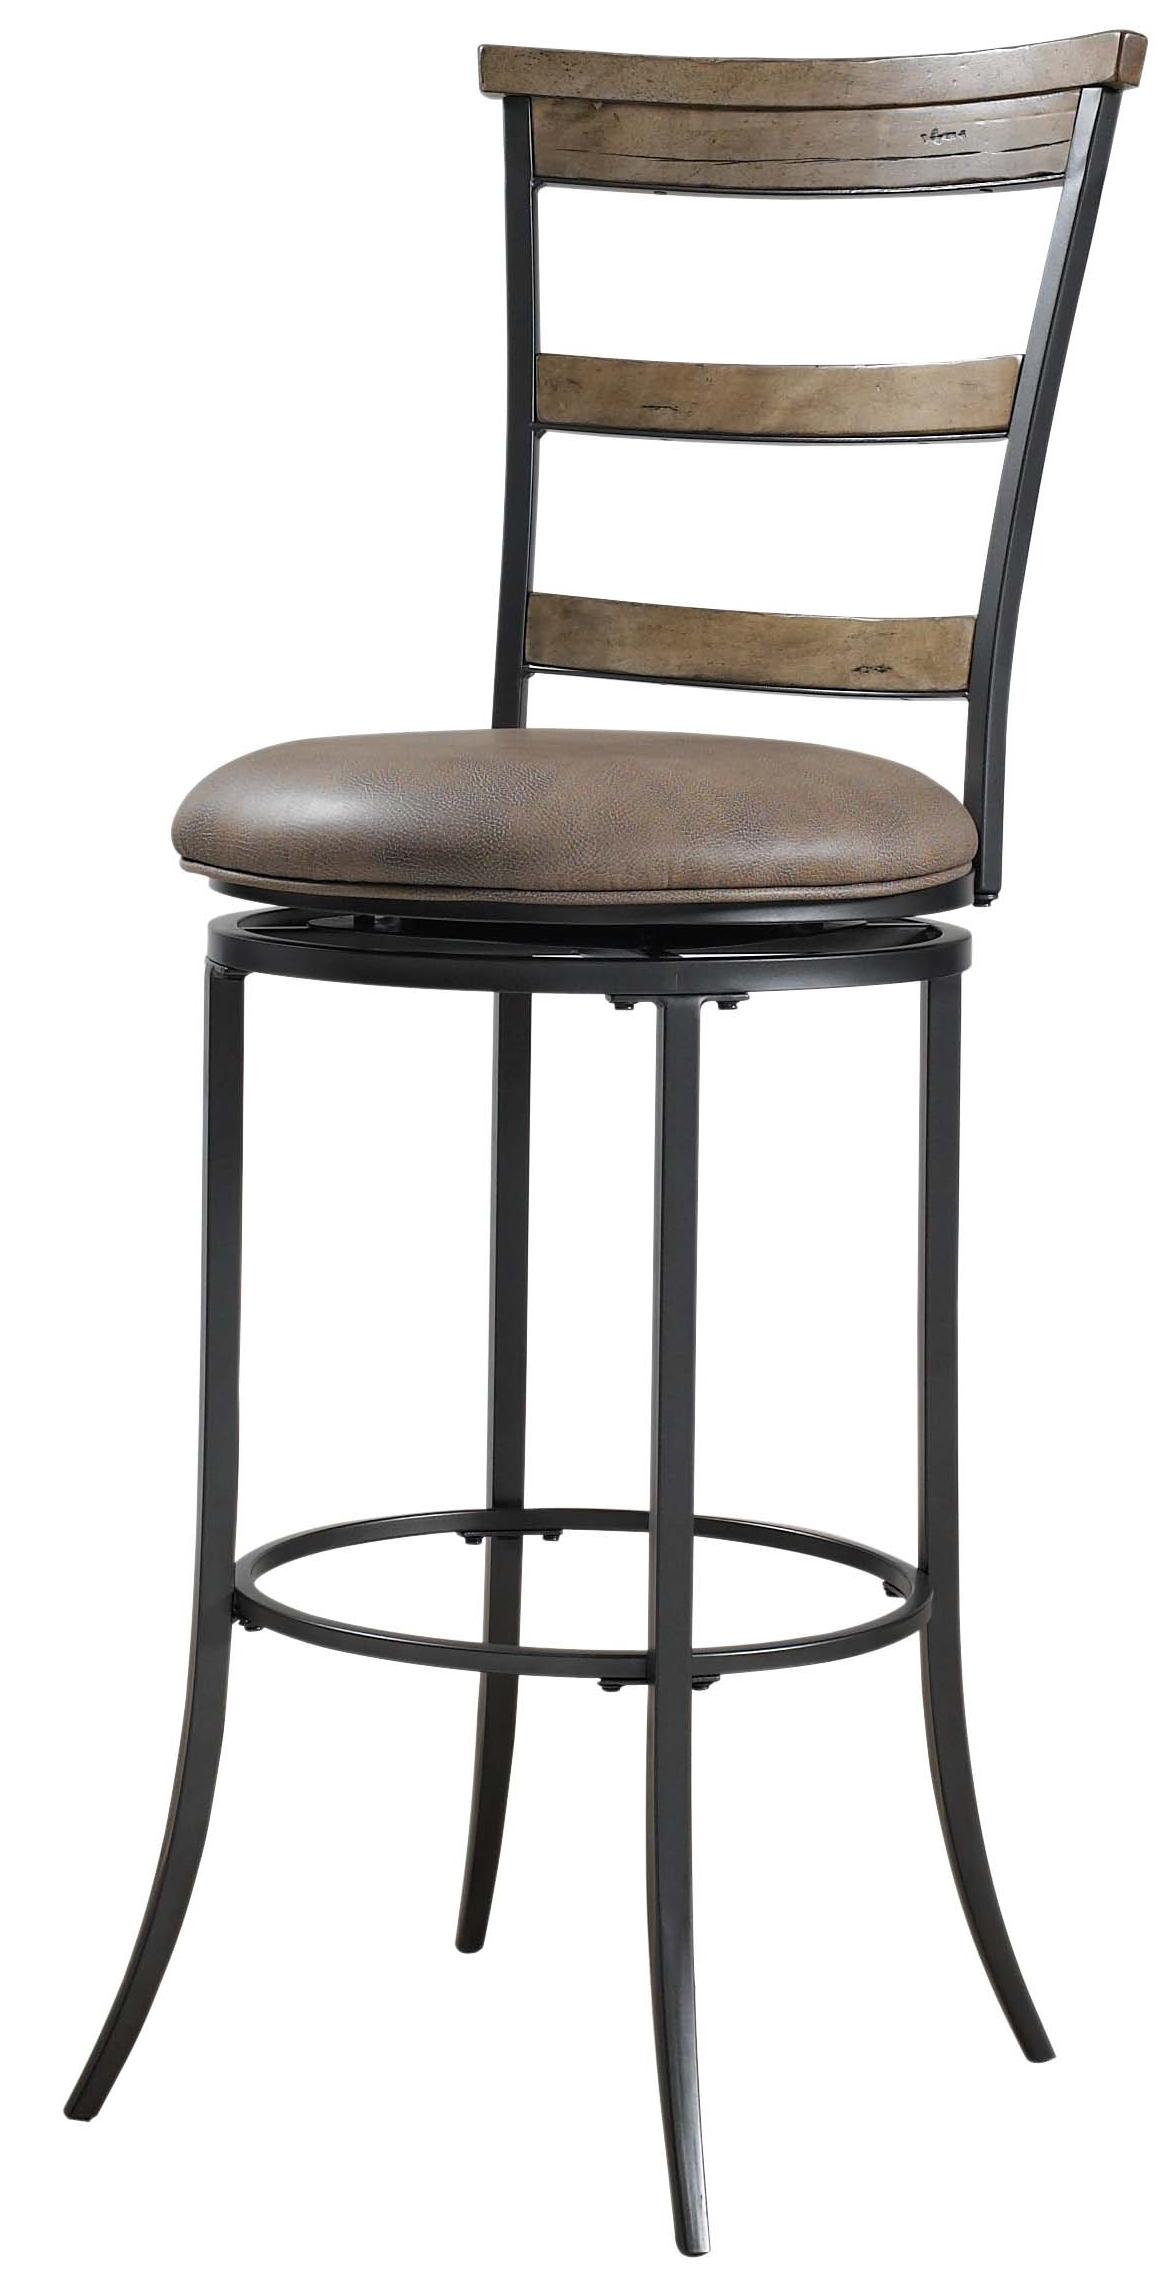 swivel chair ladder stand office chairs for wooden floors charleston back bar stool by hillsdale